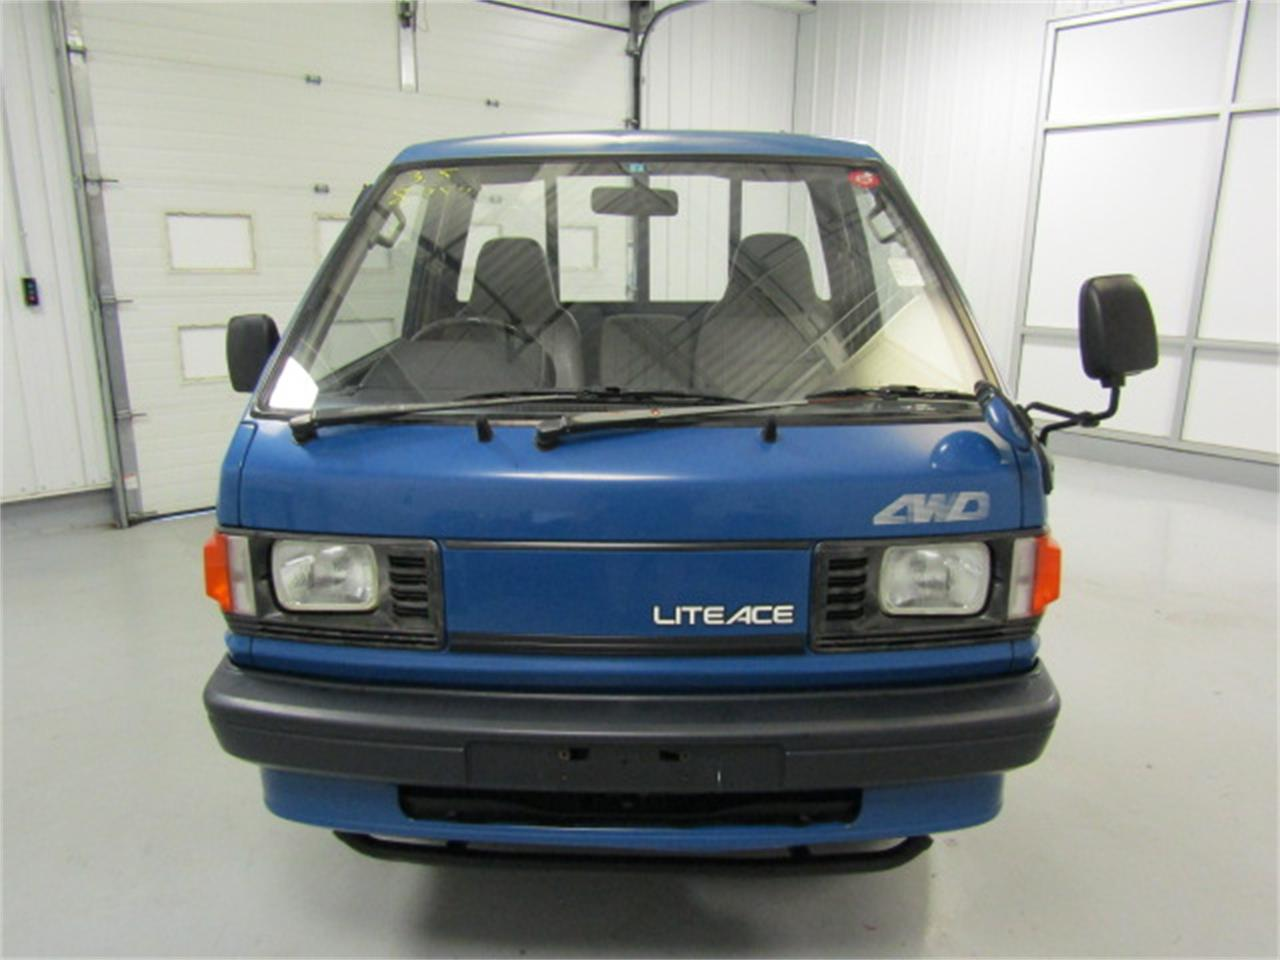 Large Picture of '90 LiteAce - $7,979.00 Offered by Duncan Imports & Classic Cars - JM5H